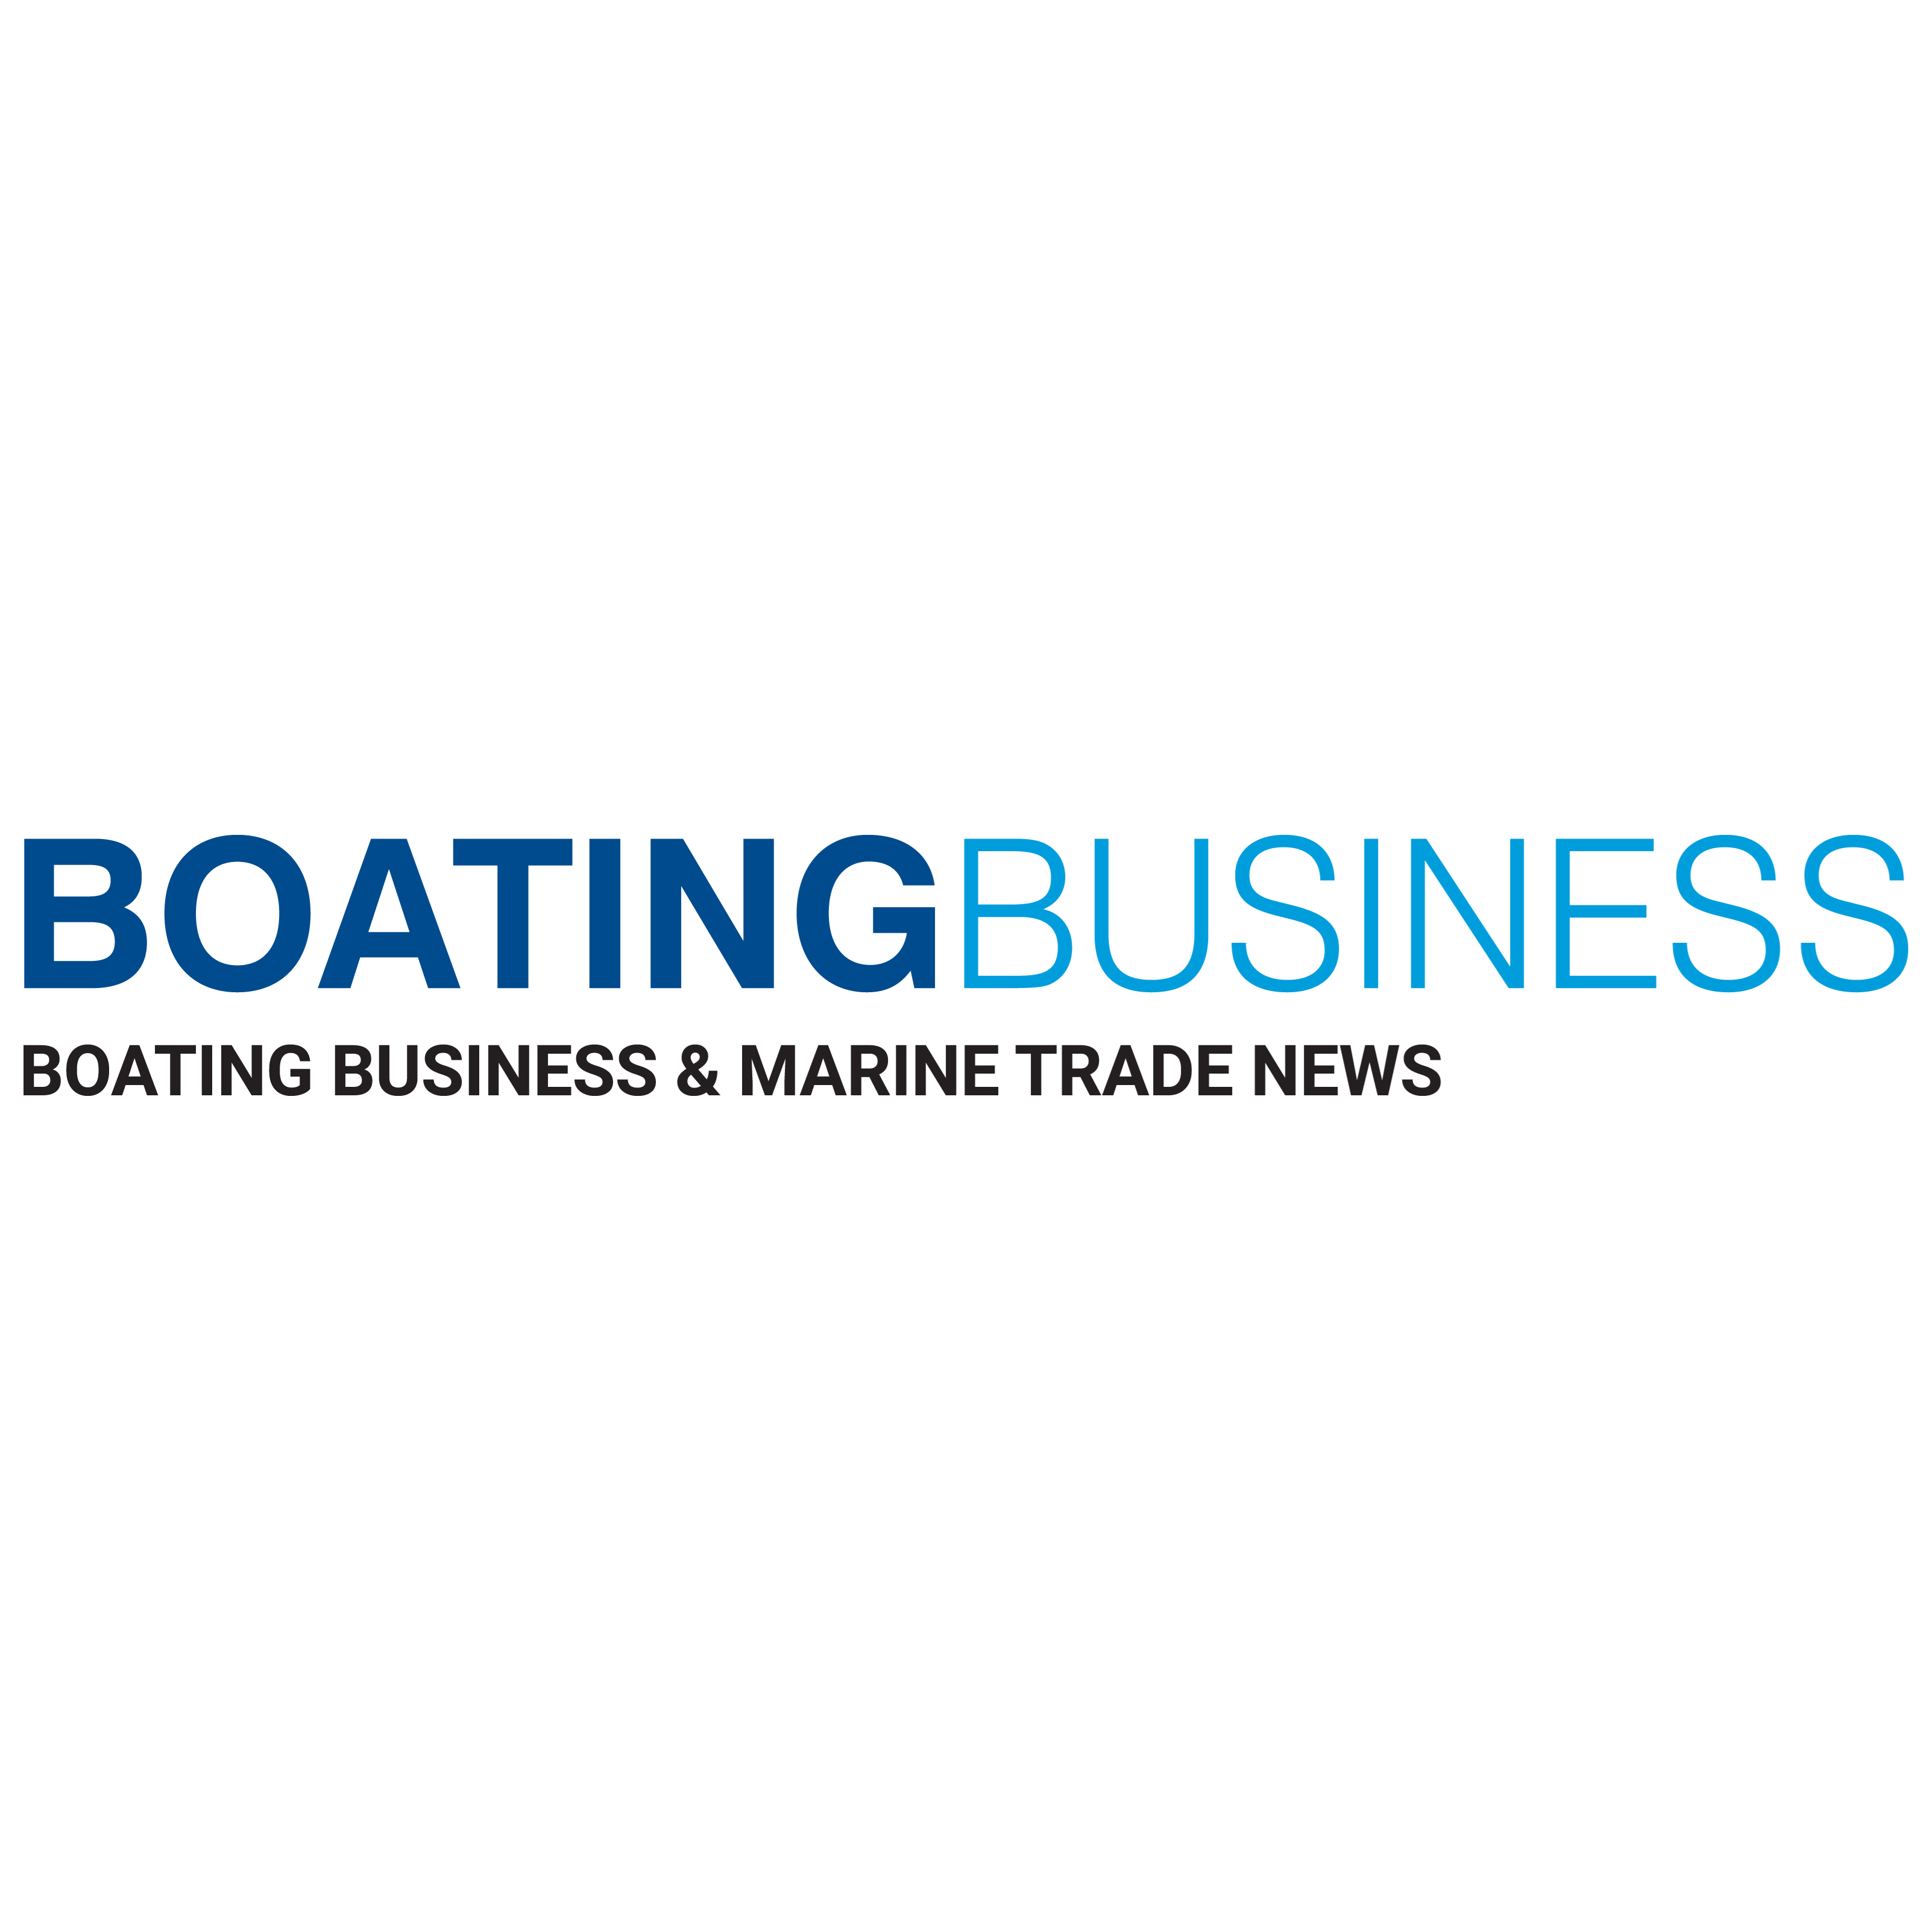 Boating Business